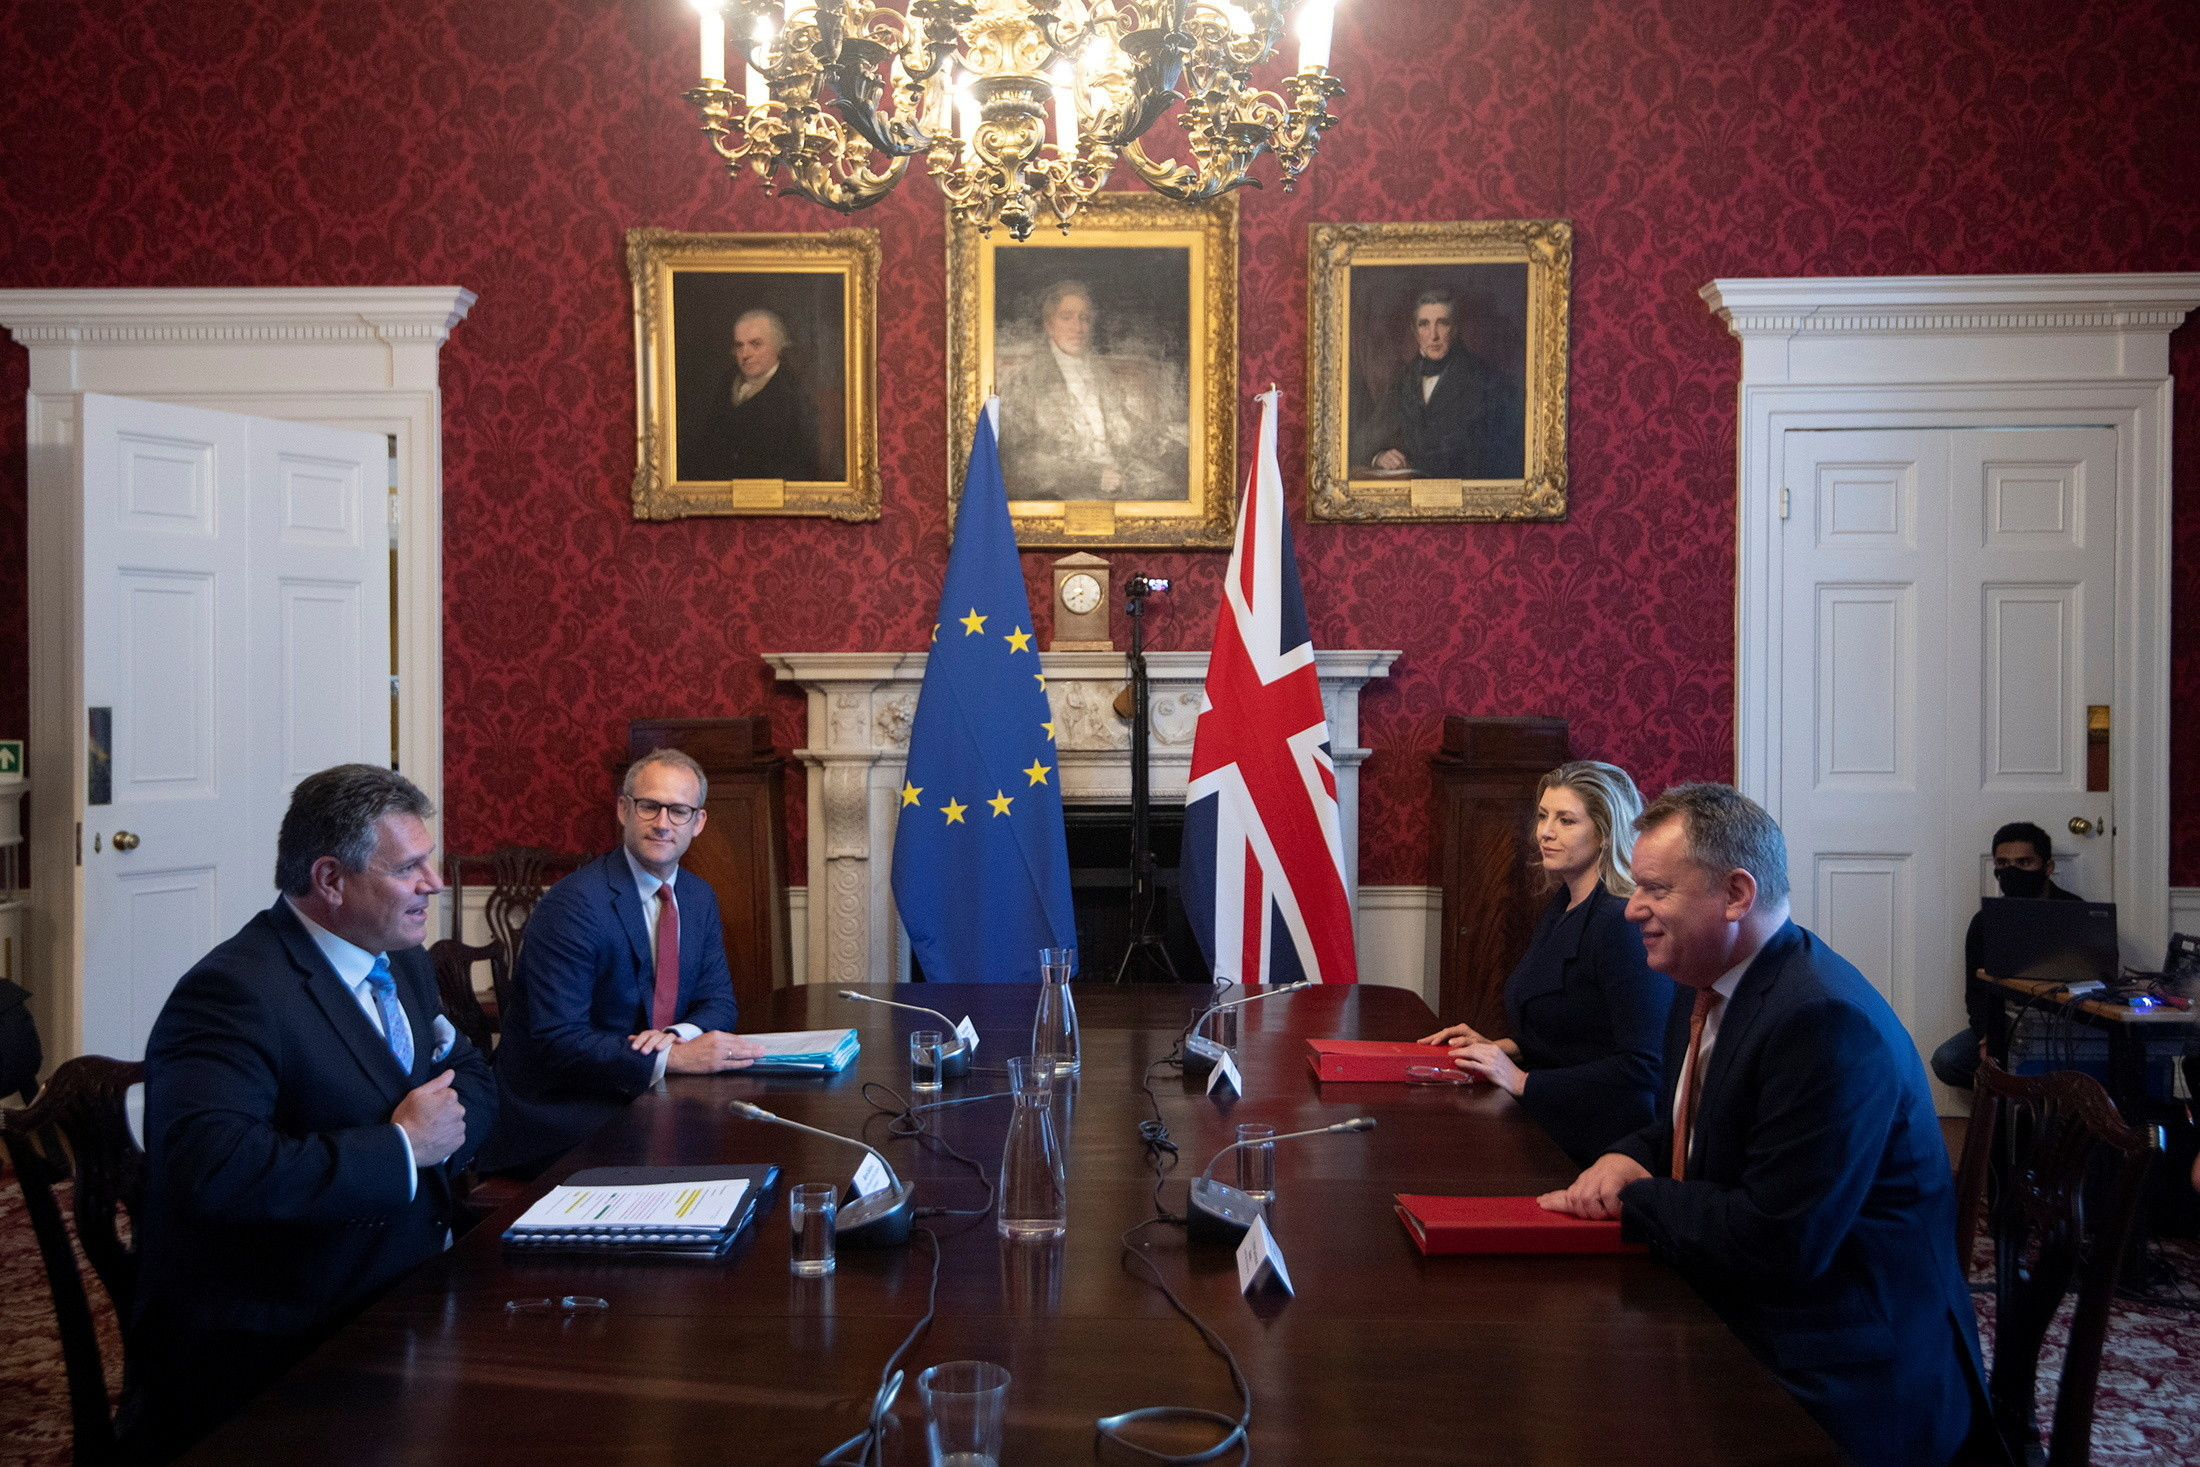 Britain's Brexit Minister David Frost chairs the first meeting of the Partnership Council with European Commission Vice-President Maros Sefcovic in London, June 9, 2021. Eddie Mulholland/Pool via REUTERS - RC2UWN9G98FS